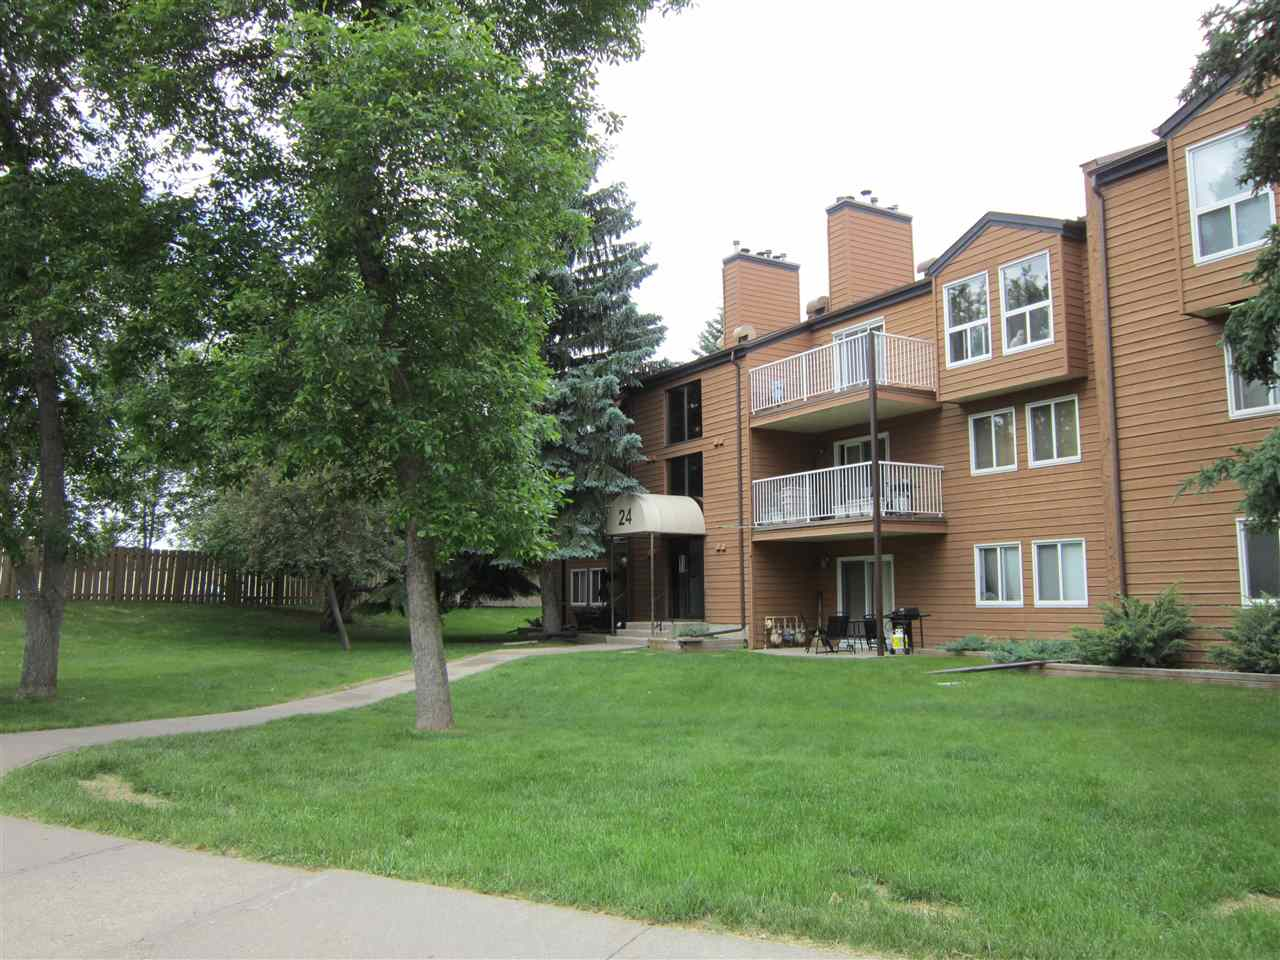 202 24 ALPINE Place, 2 bed, 1 bath, at $119,900